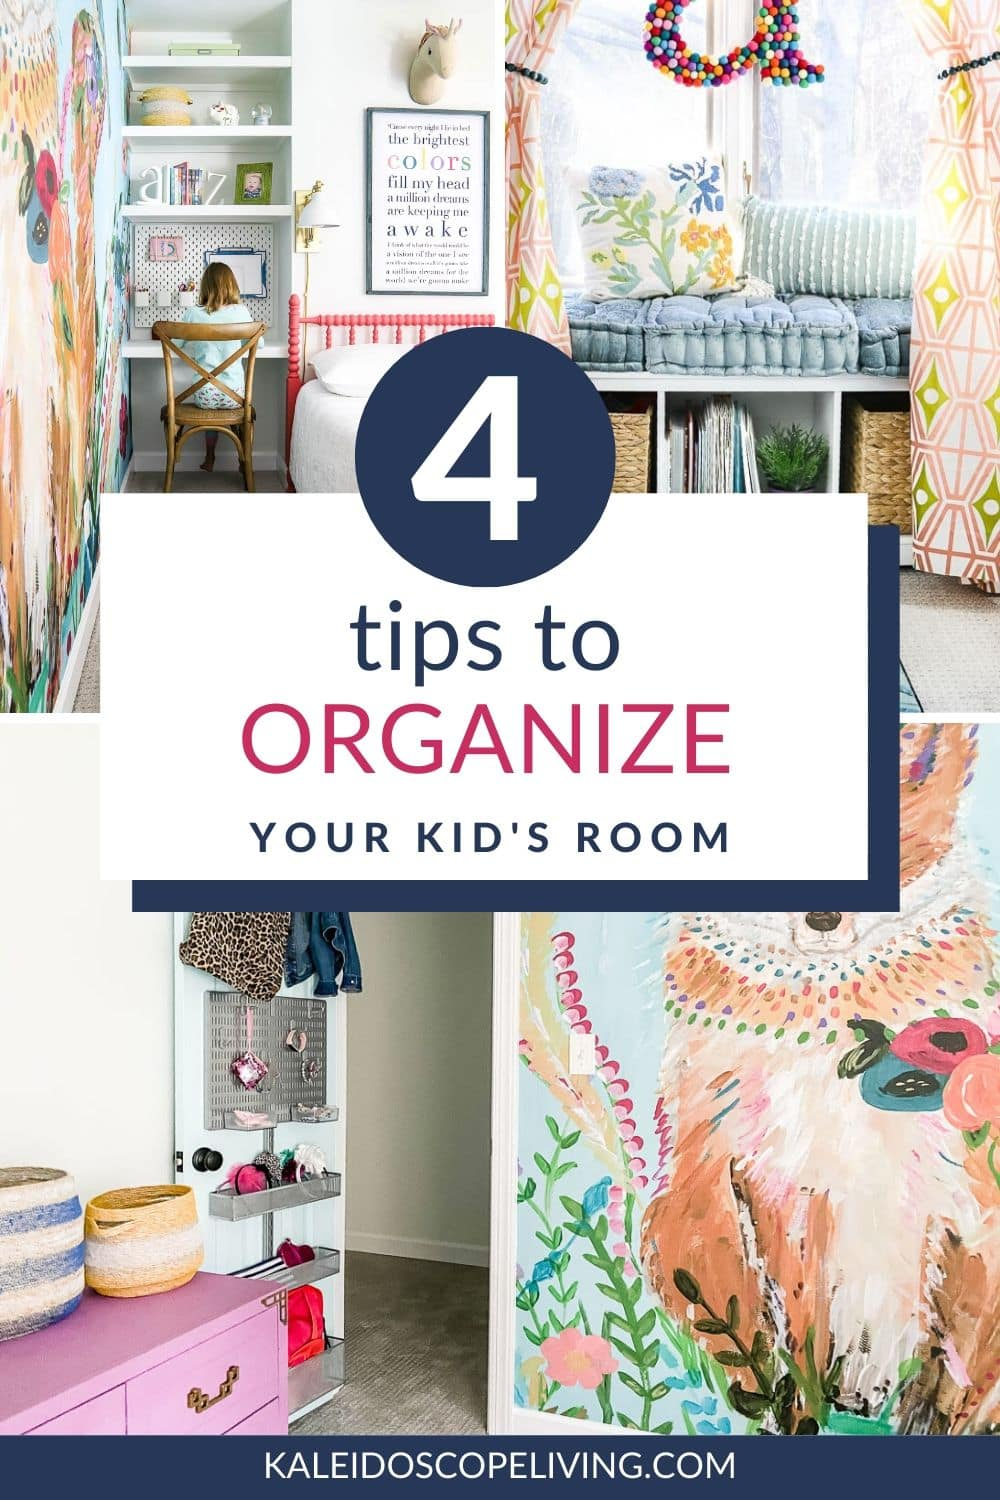 4 tips to organize your kid's room